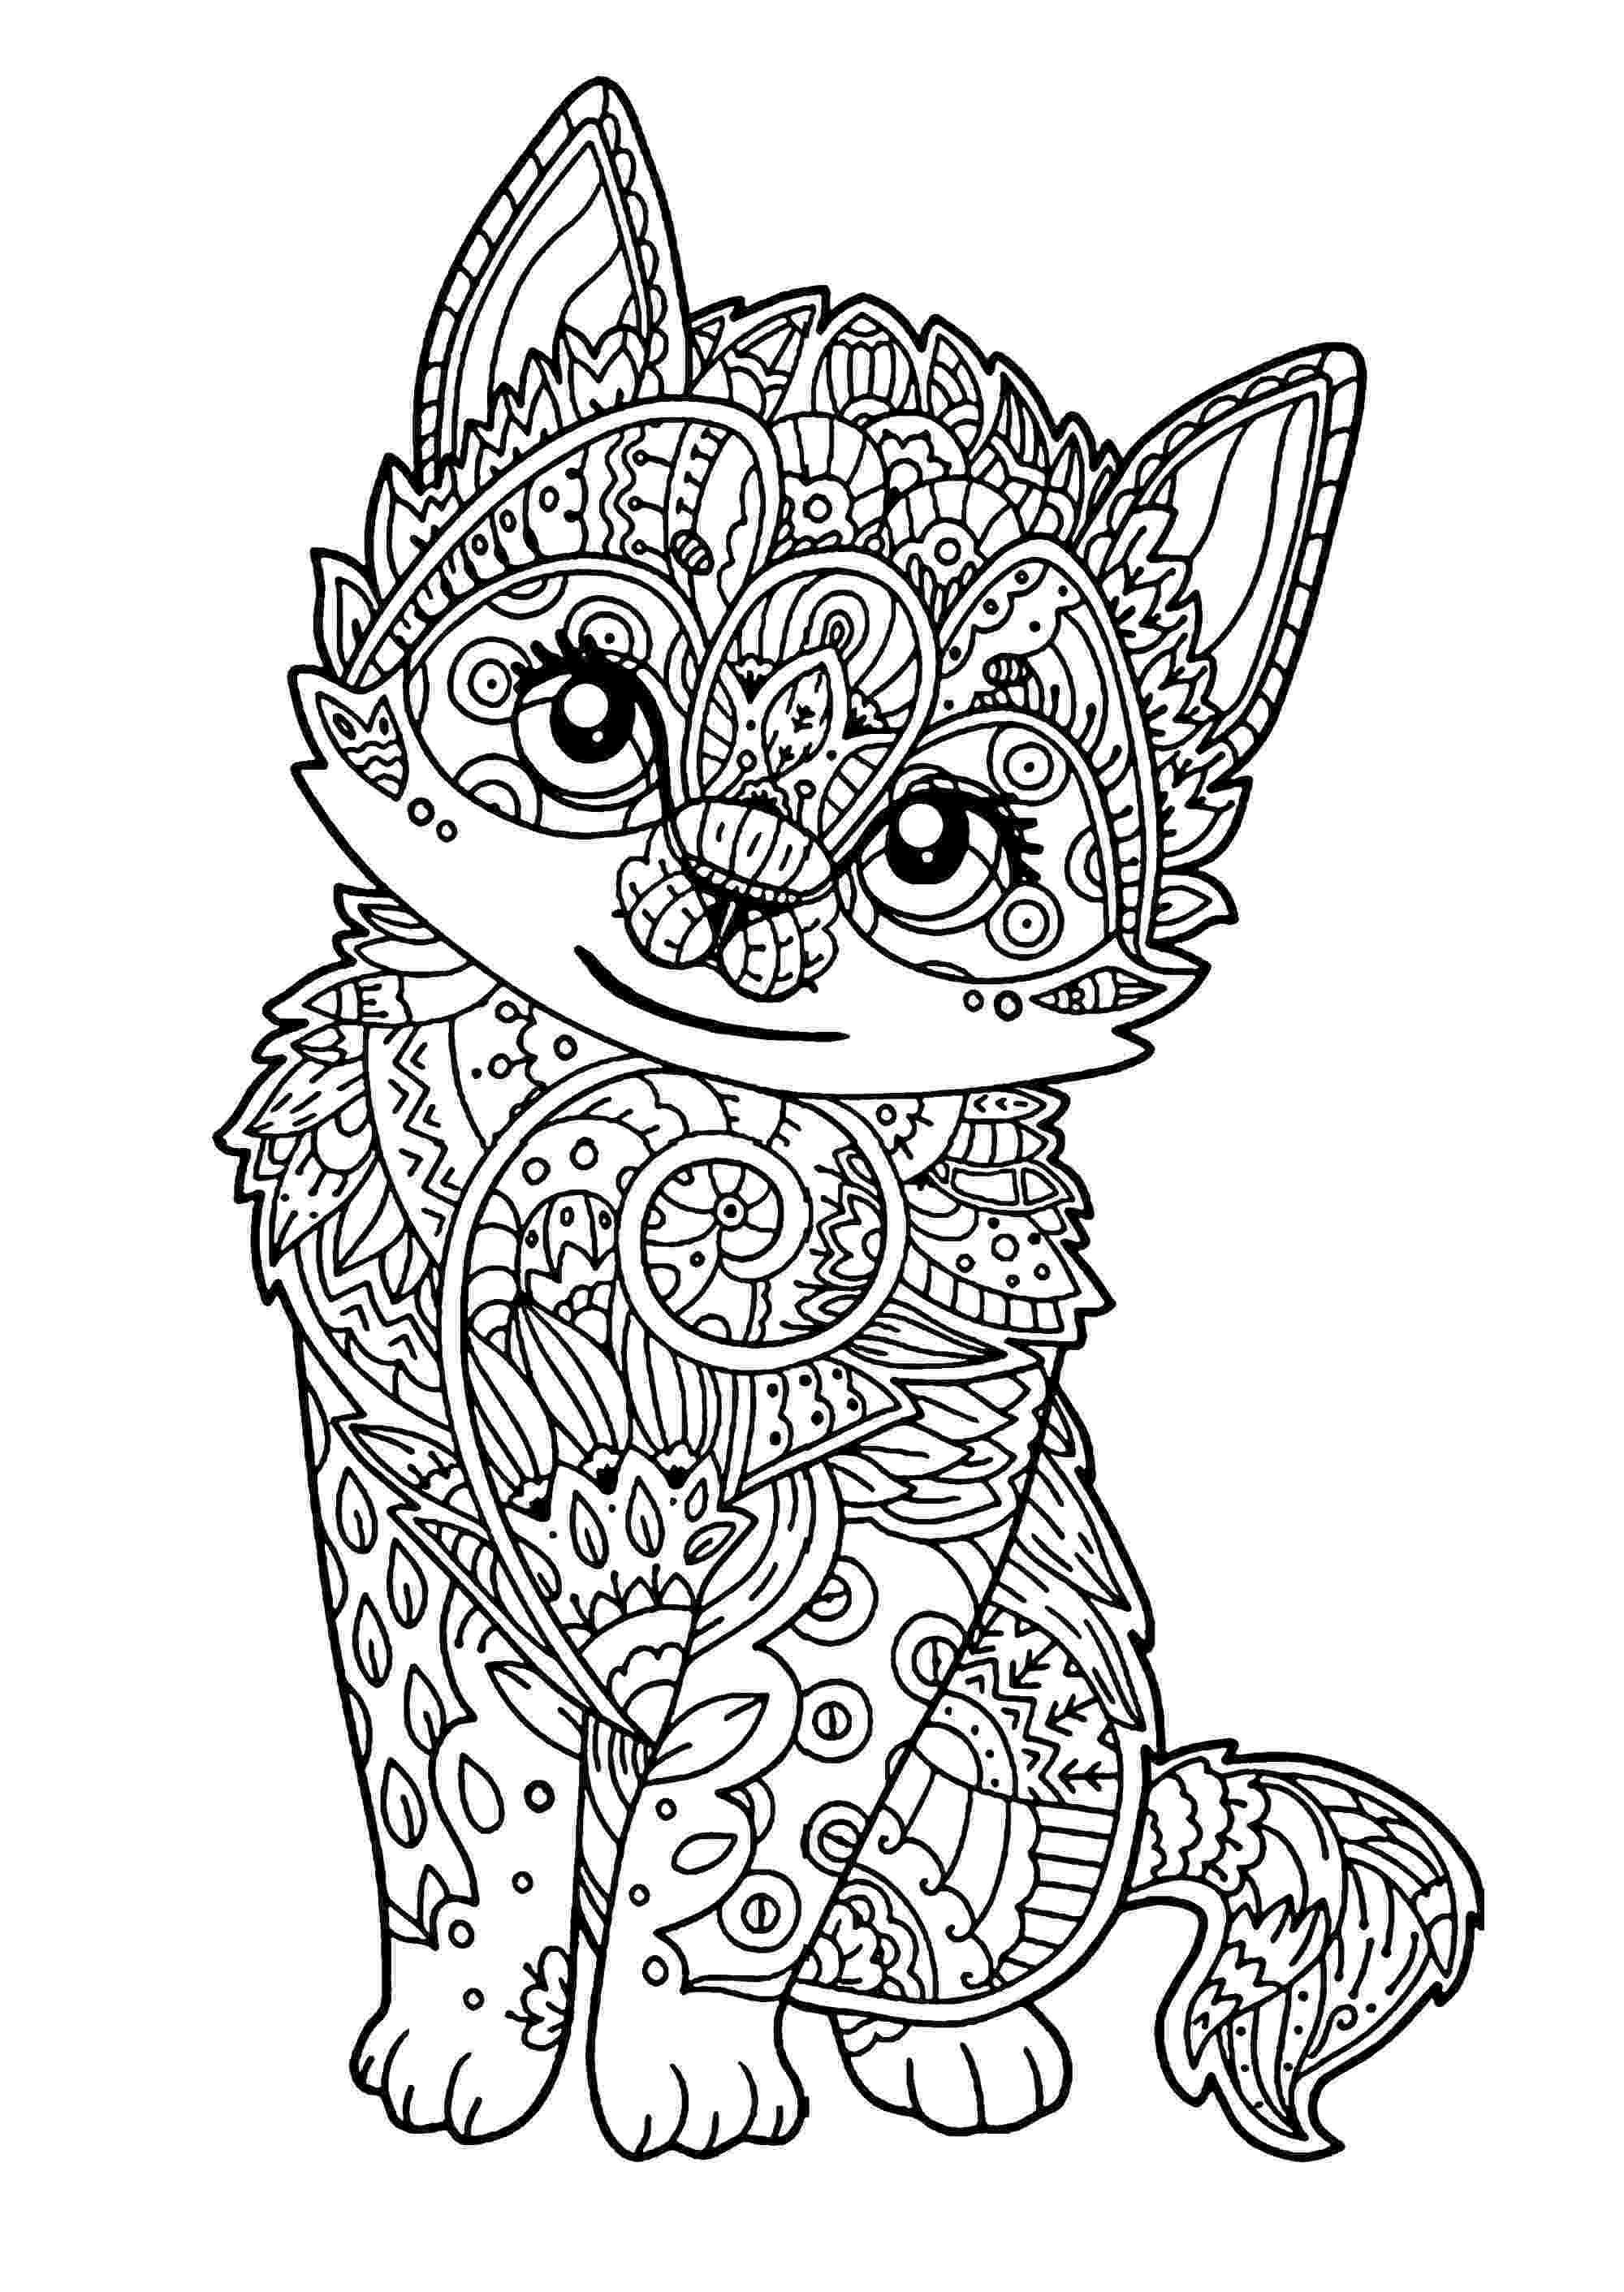 cat coloring pages free printable free printable cat coloring pages for kids printable pages cat coloring free